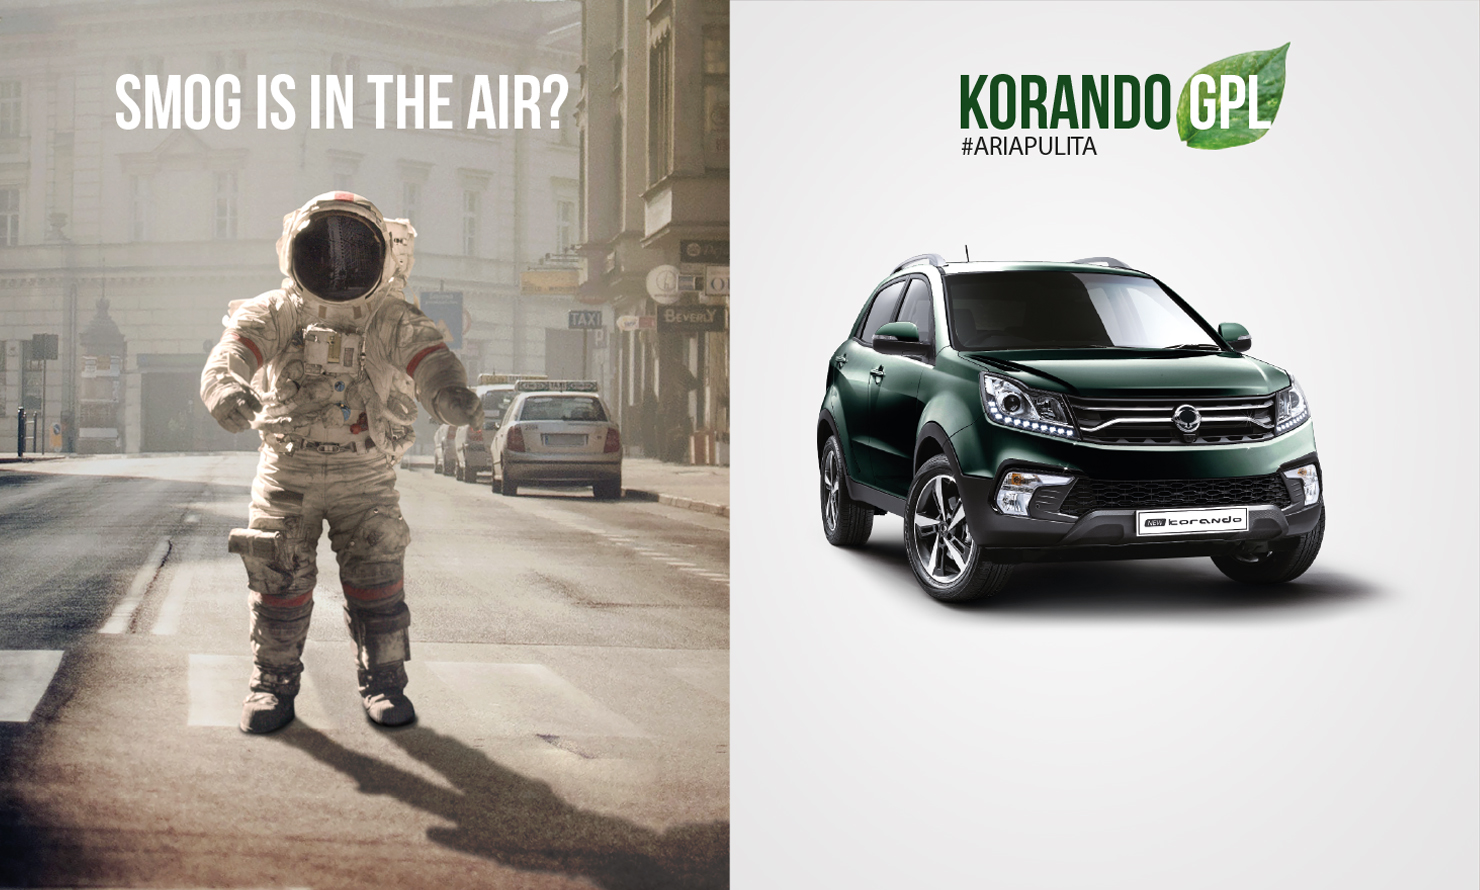 https://kubelibre.com/uploads/Slider-work-tutti-clienti/ssangyong-korando-gpl-smoke-is-in-the-air-1.jpg